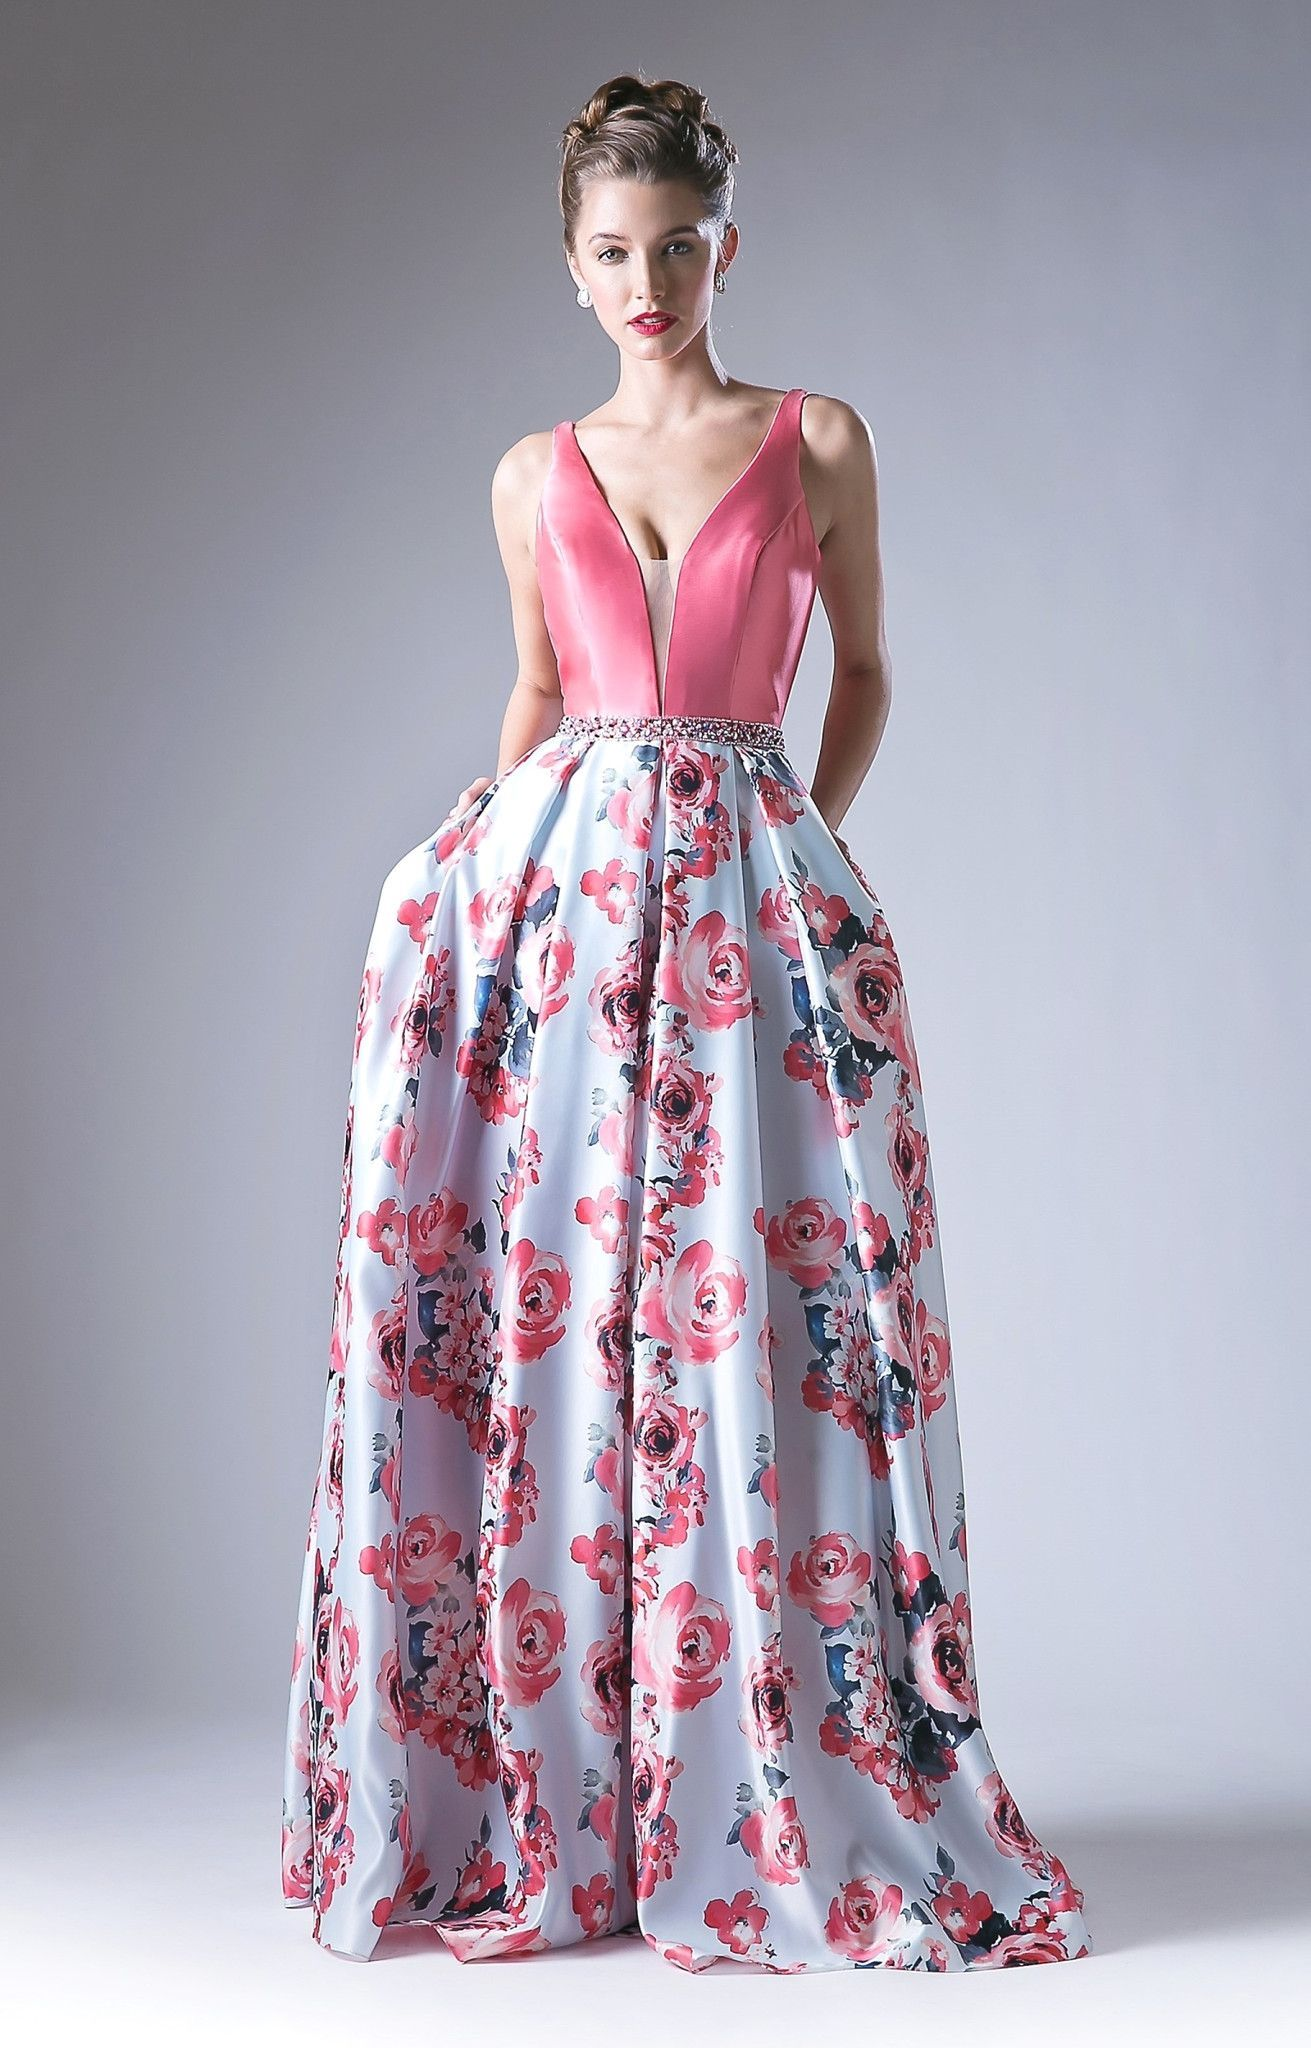 Pink vneck dress with long floral print skirt by cinderella divine